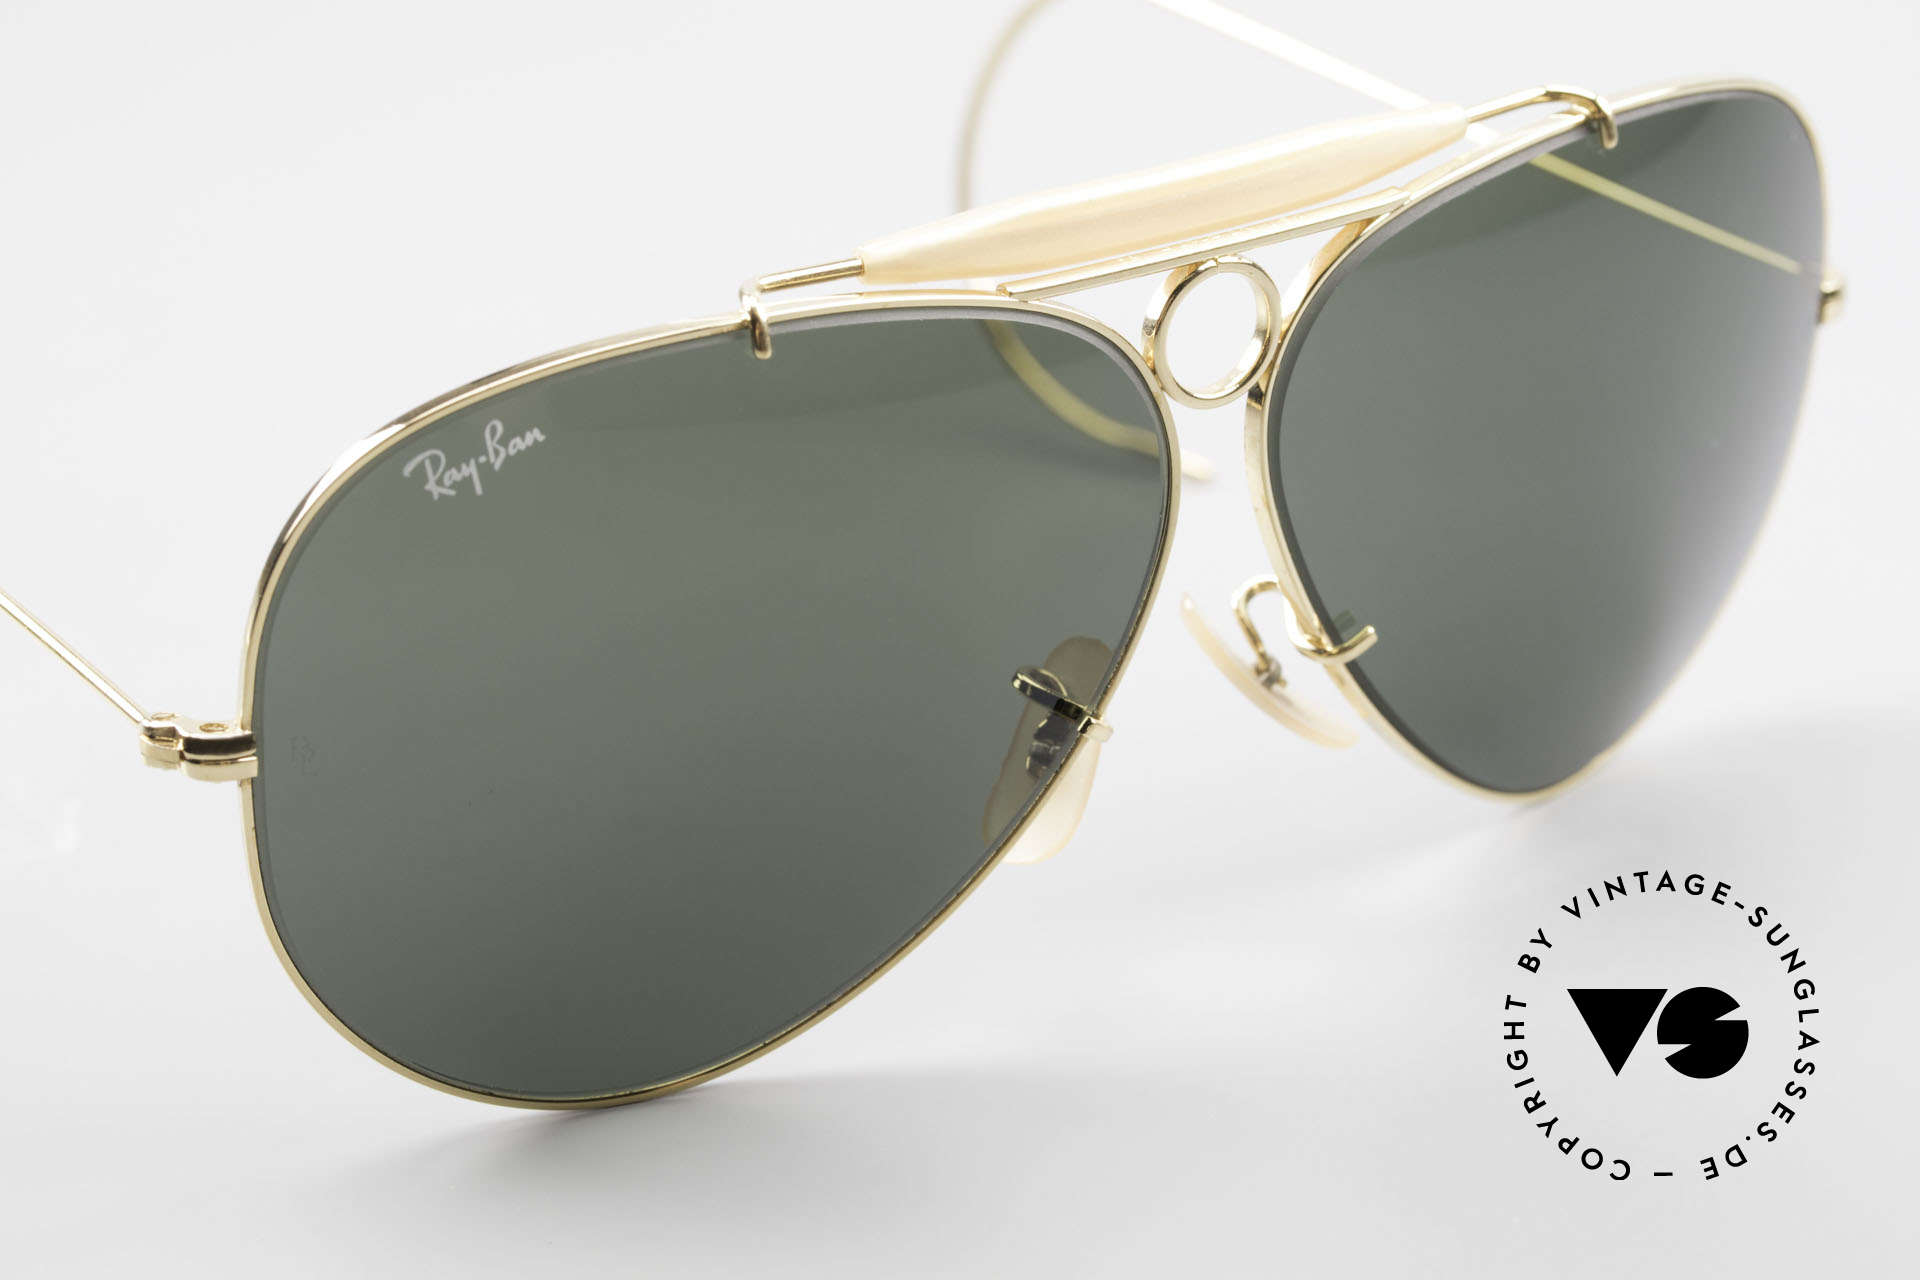 Ray Ban Shooter Sport Sunglass Classic Made in USA, NO RETRO frame, but authentic Bausch&Lomb, USA, Made for Men